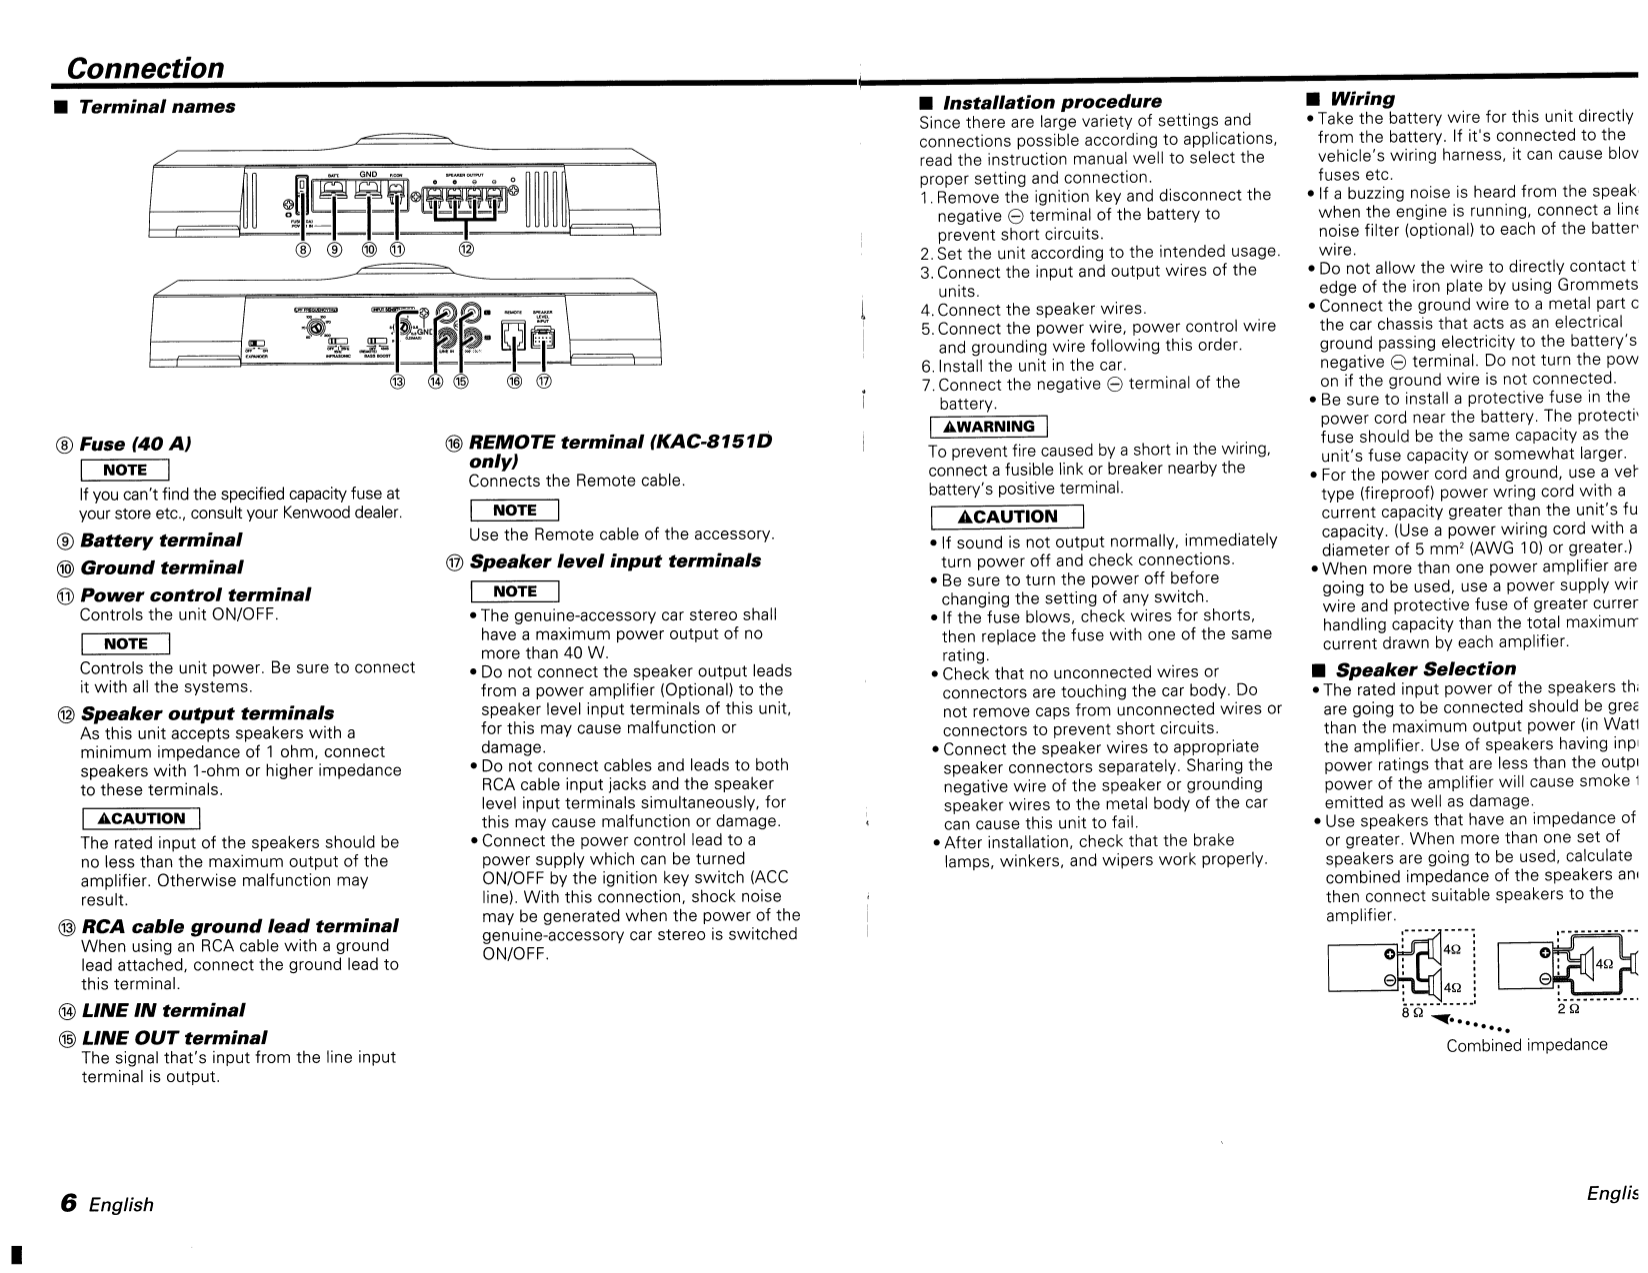 113kac8151.pdf 5 pdf manual for kenwood car amplifier kac 8101d kenwood kac 8101d wiring diagram at panicattacktreatment.co